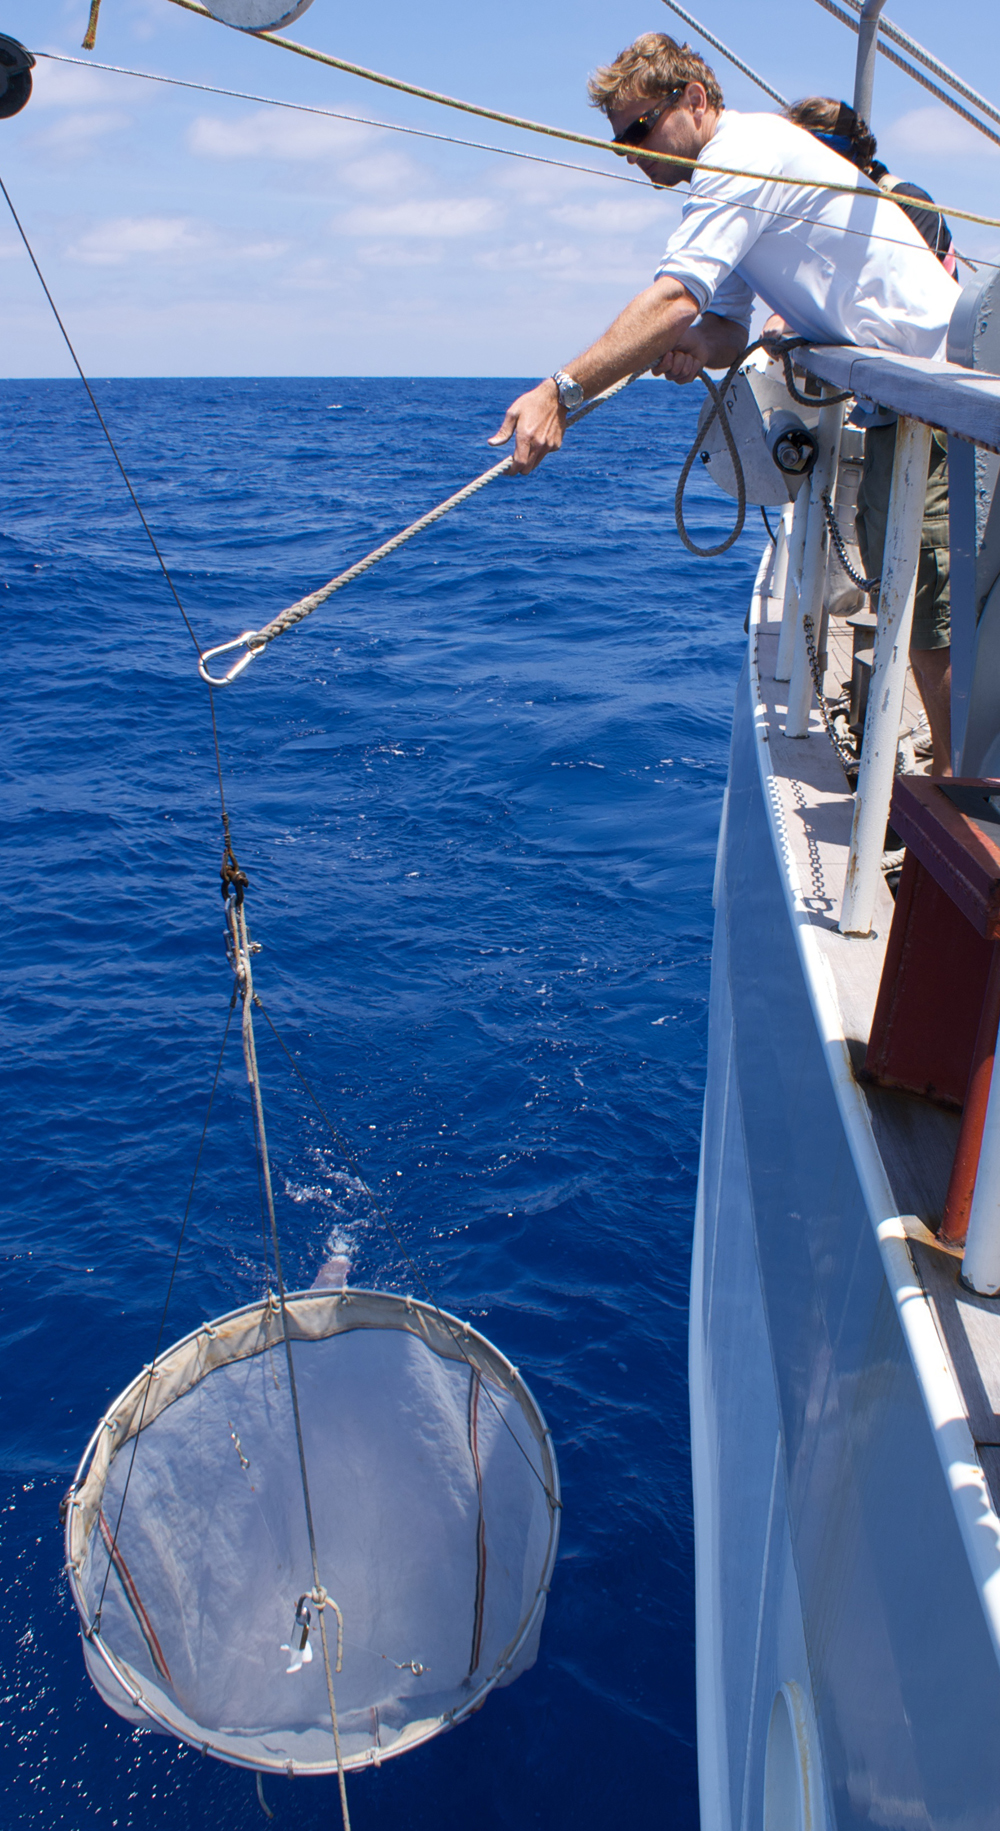 Giora Proskurowski deploys a net to collect samples that help estimate how much plastic debris is in the ocean.